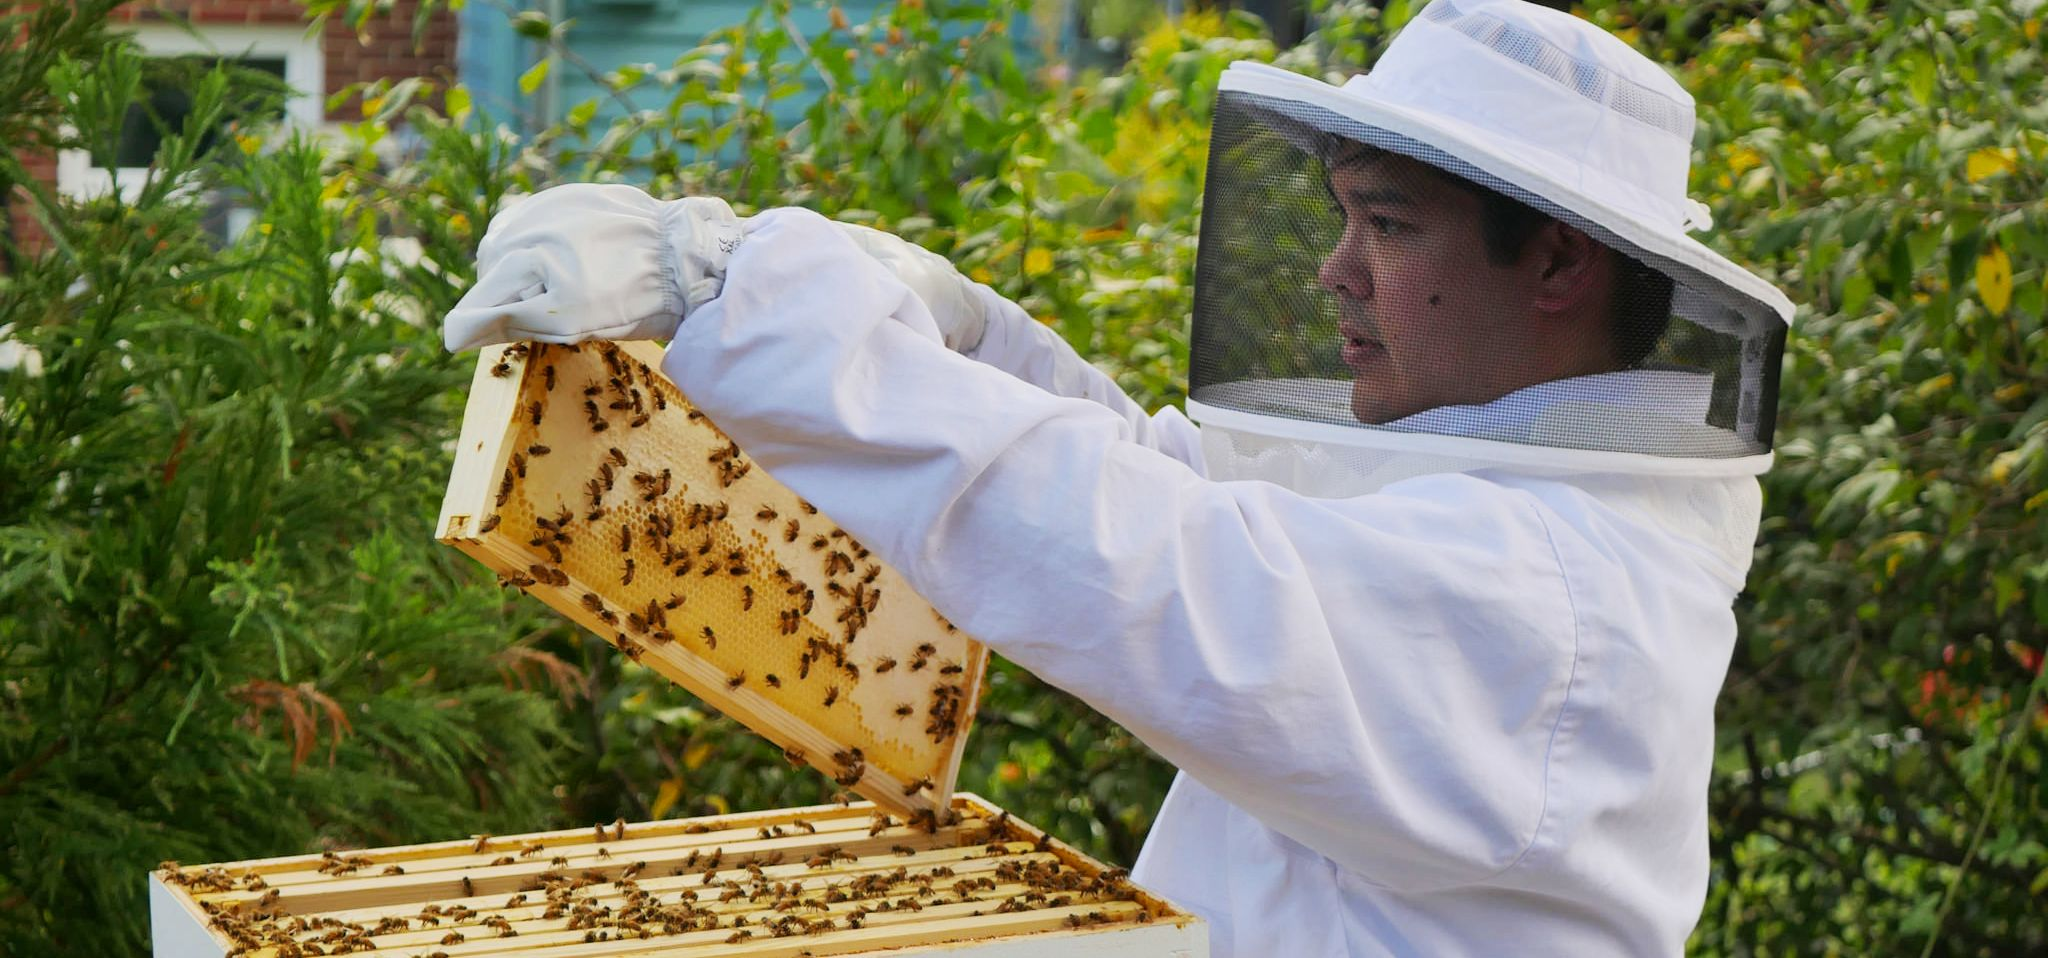 Backyard Beekeeping: Easier (and Safer) Than You Think